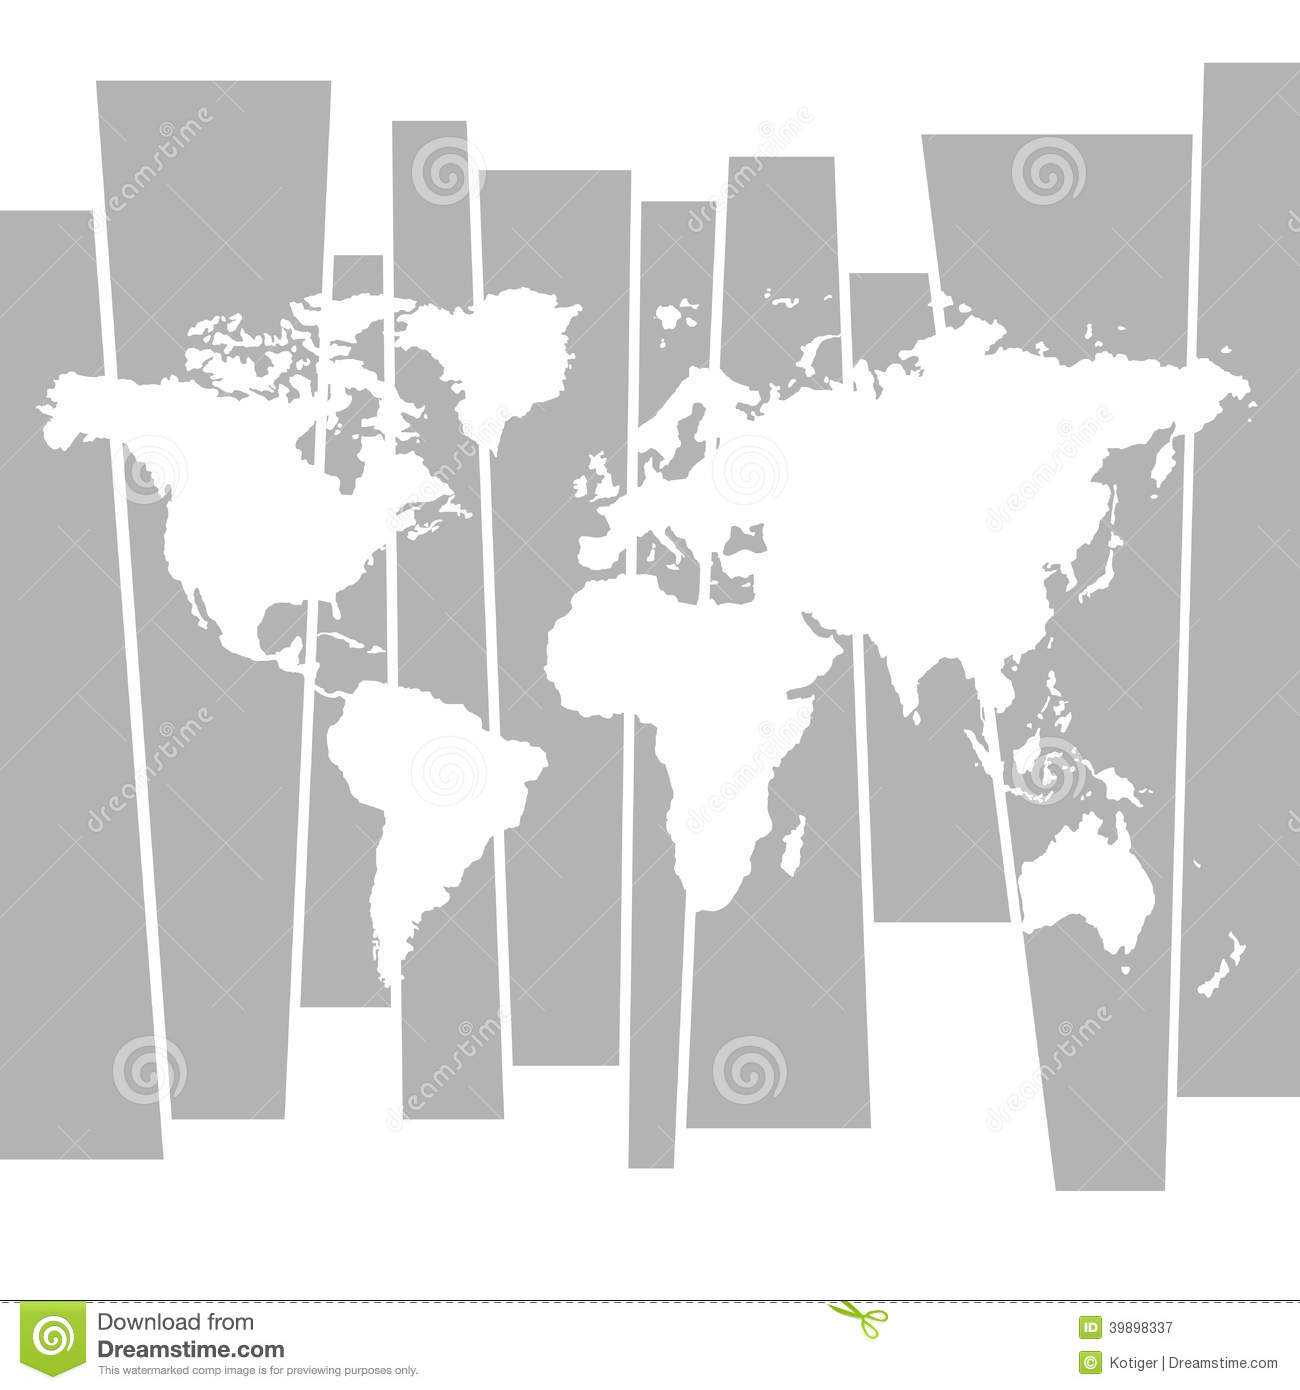 Vector world map graphic concept background stock vector vector world map graphic concept background gumiabroncs